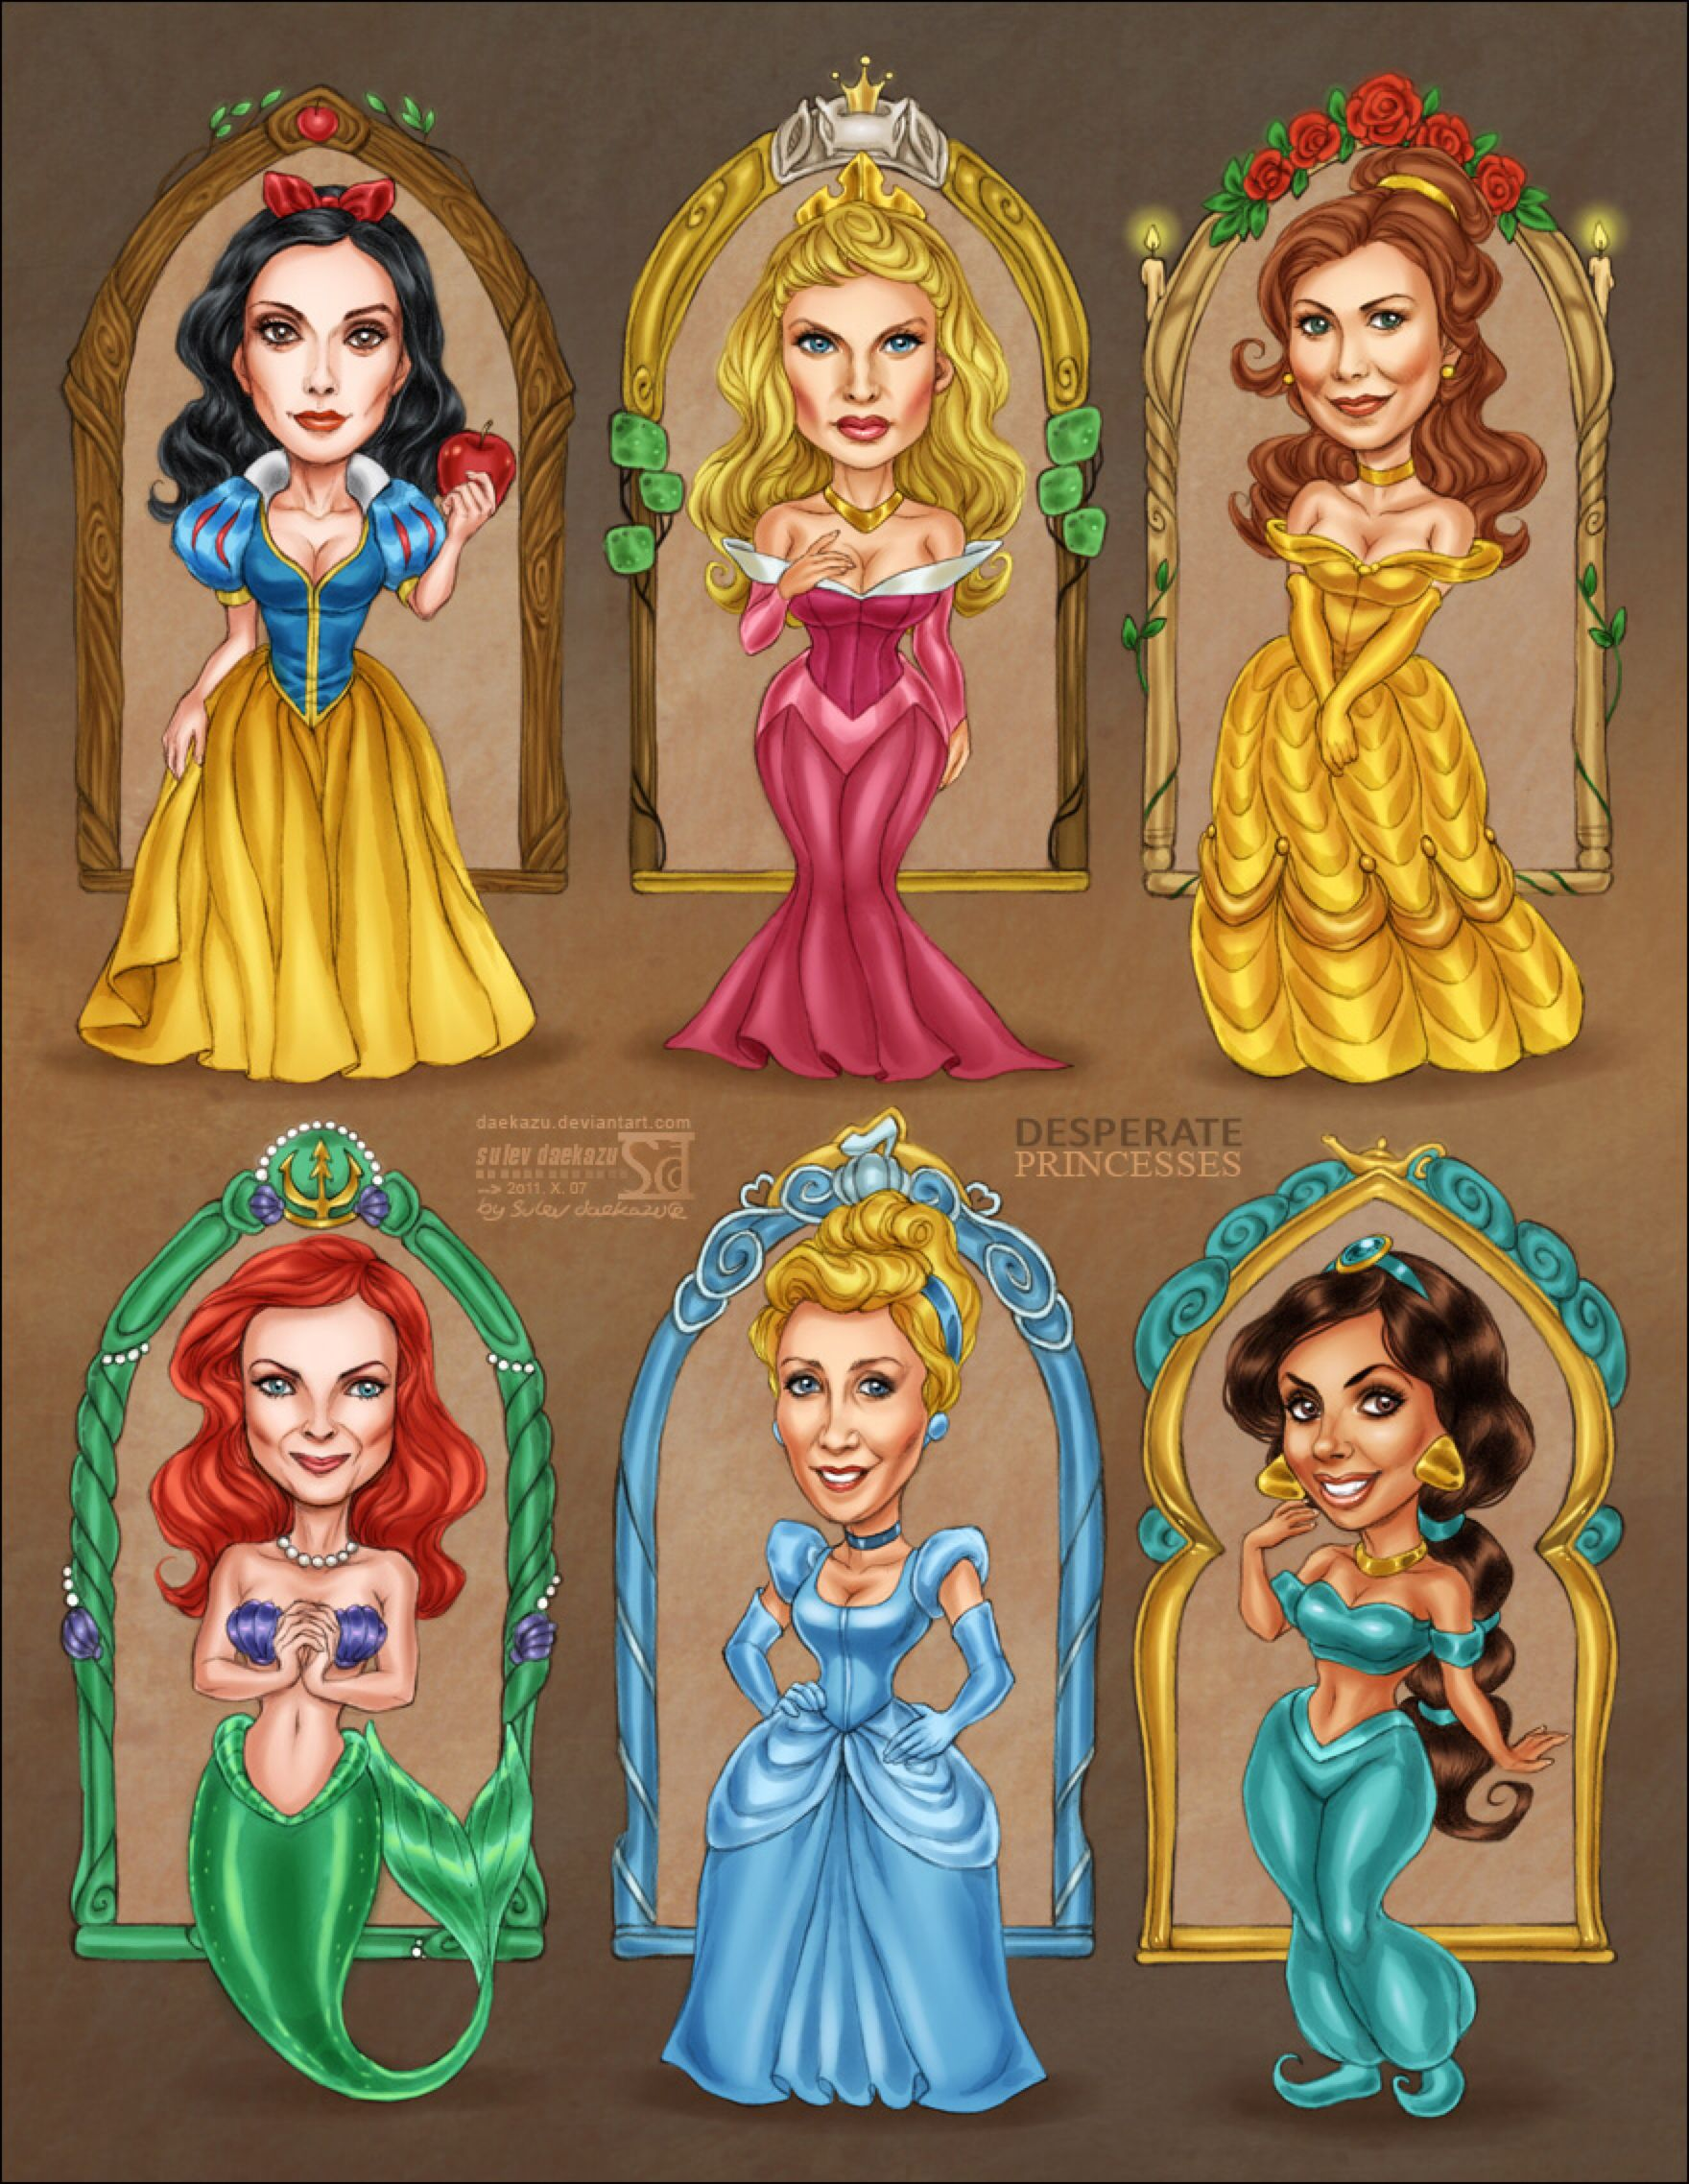 Desperate Princesses by daekazu on @DeviantArt | Disney Love | Pinterest